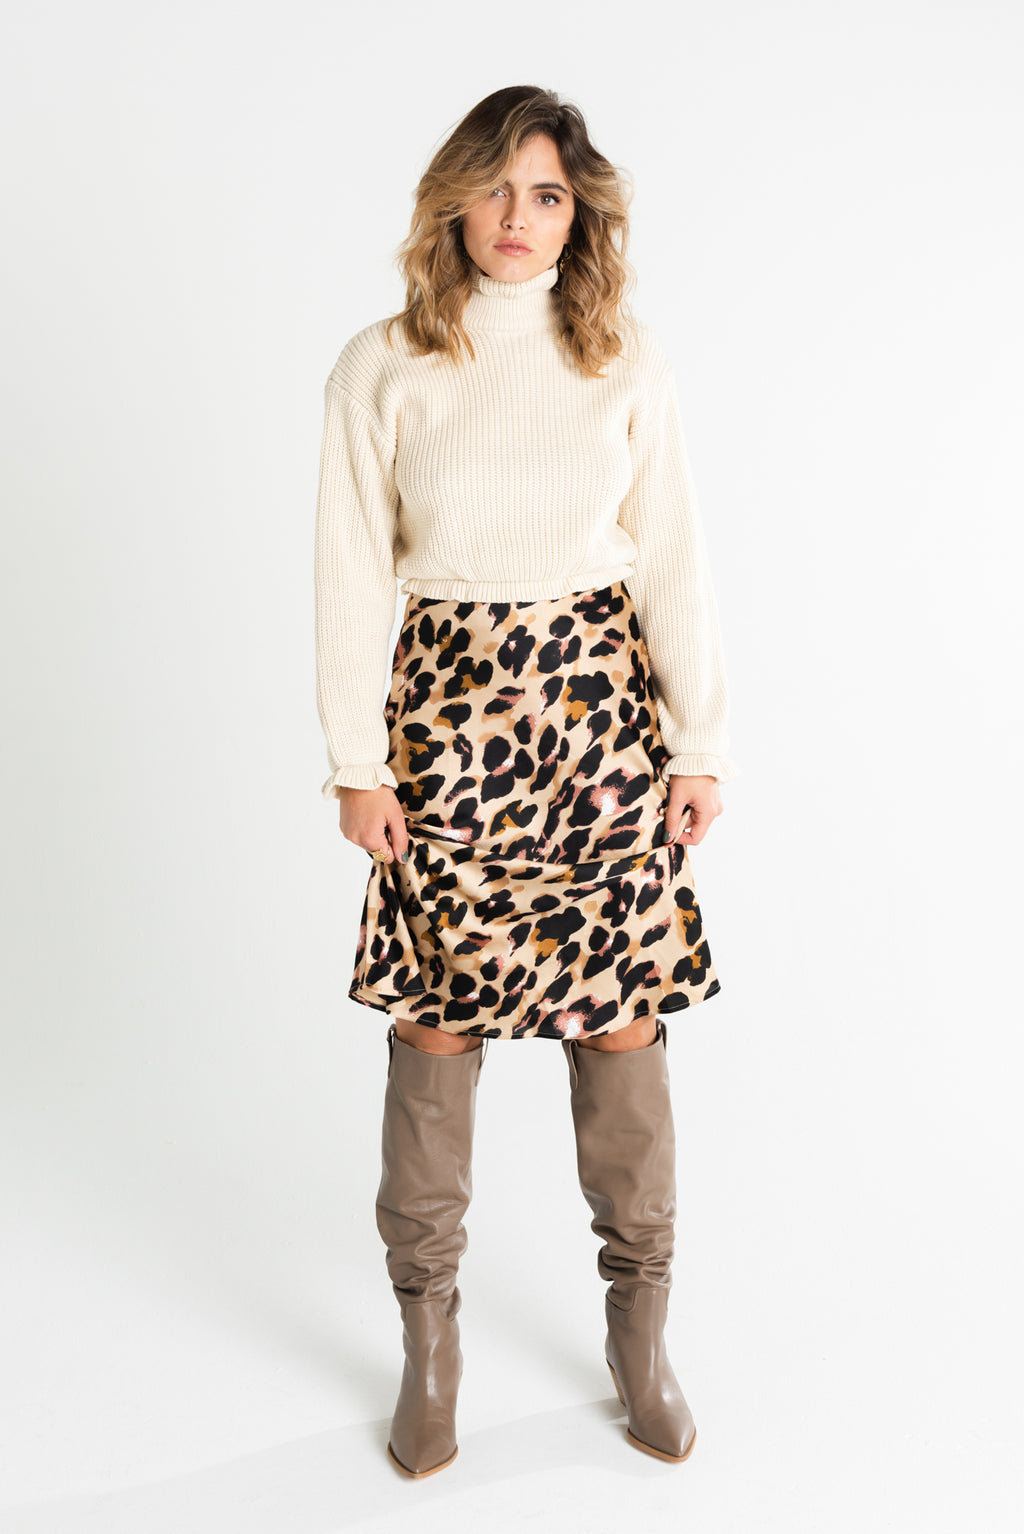 Not Your Average Leopard Midi Skirt